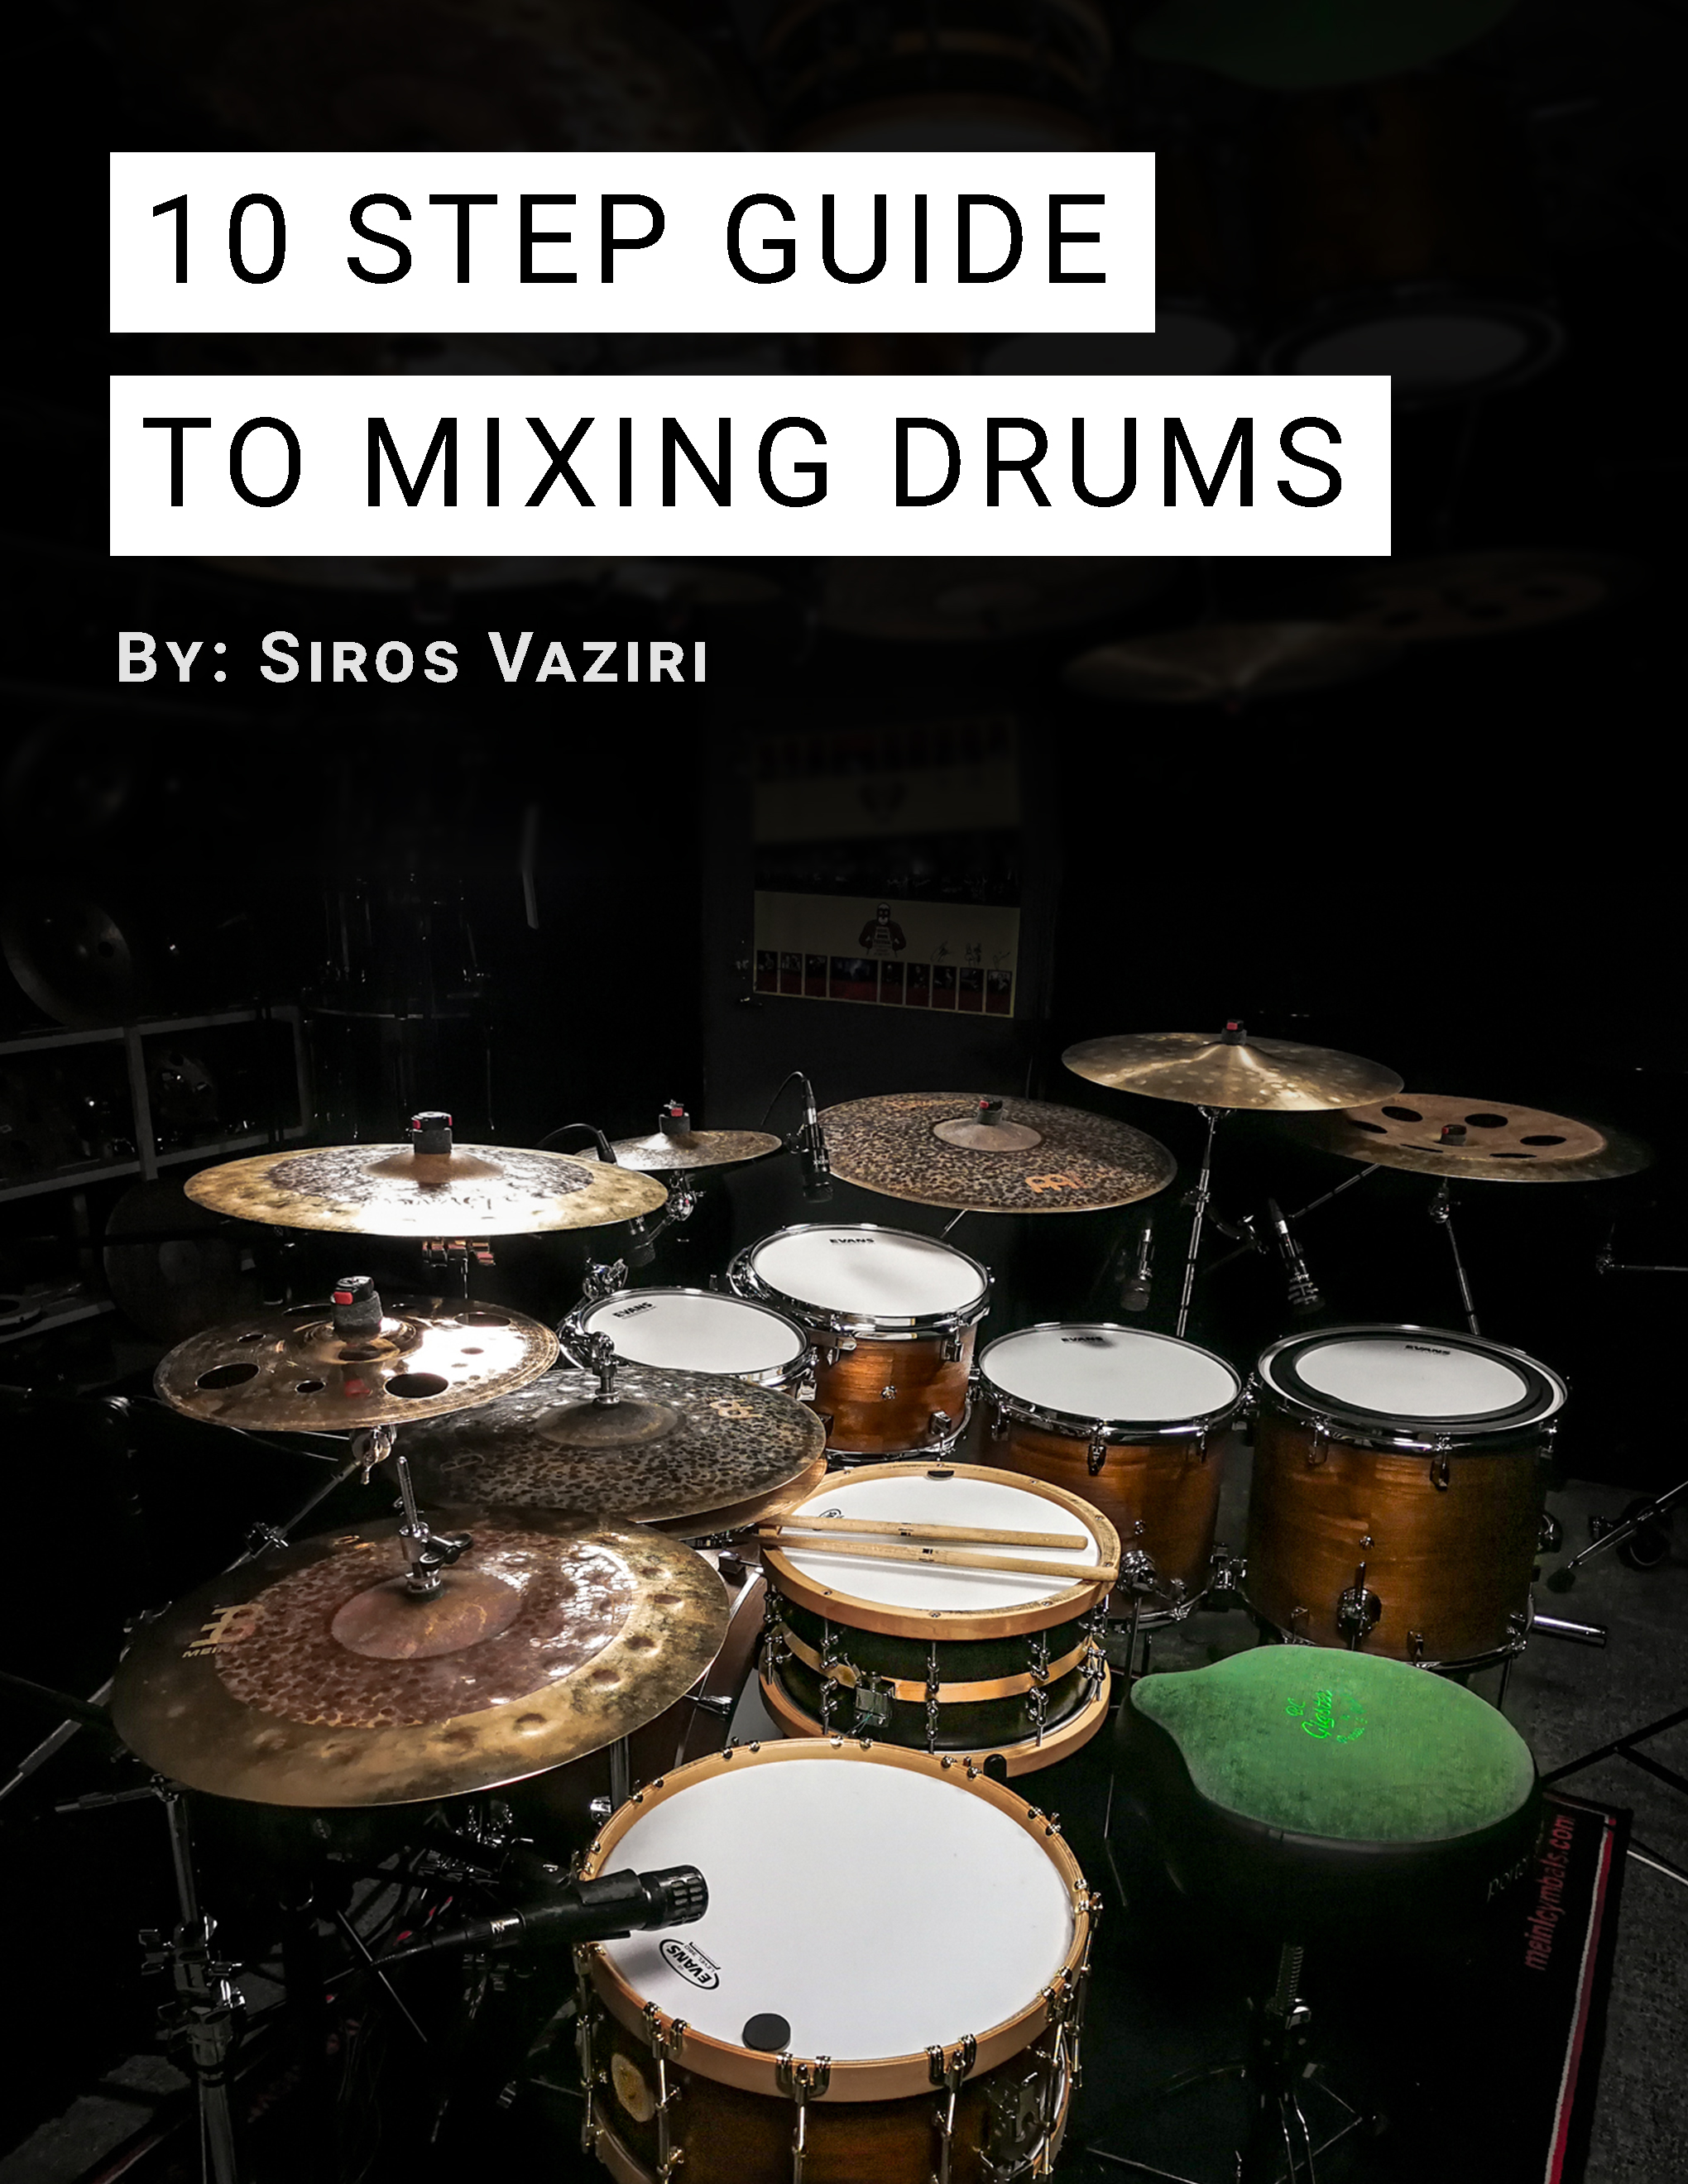 10-Step-Guide-to-Mixing-Drums_v2.jpg